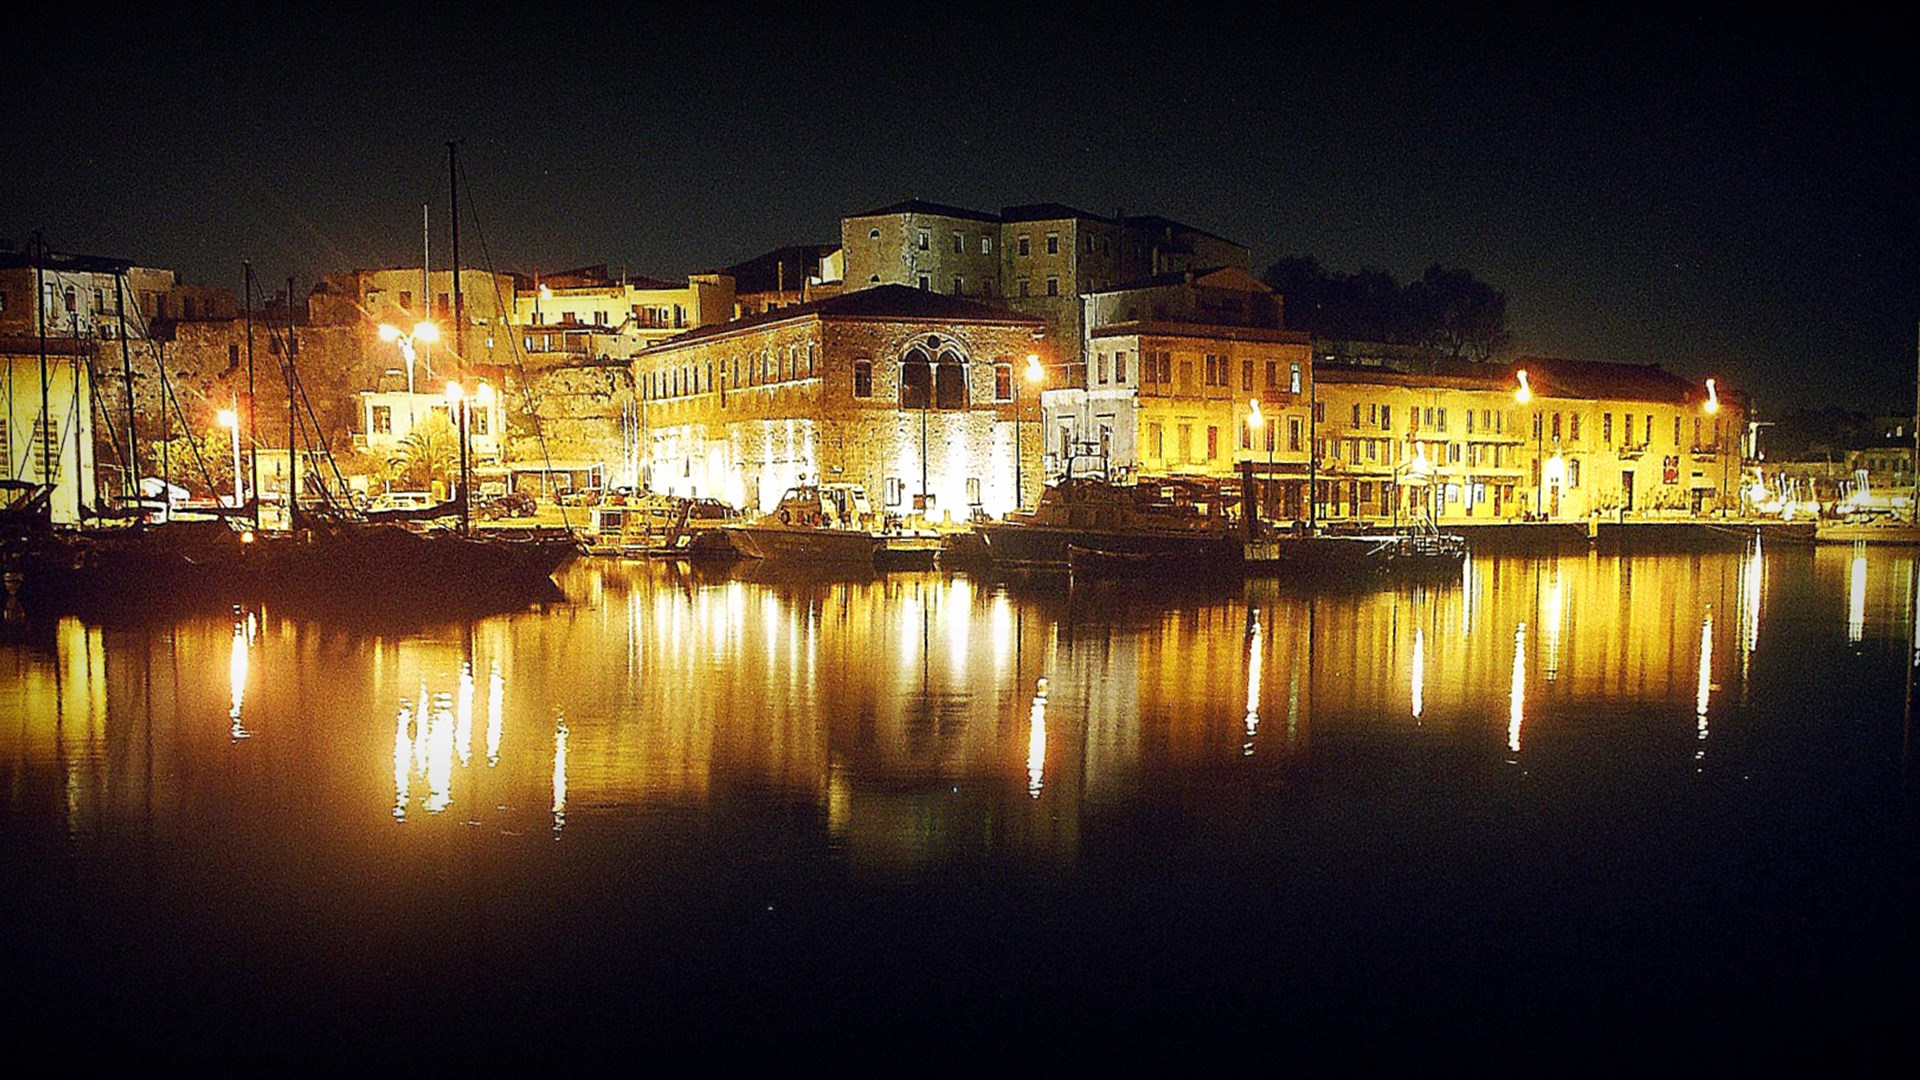 Chania City, Crete - Greece  | 05 Aug 2014  | Alargo